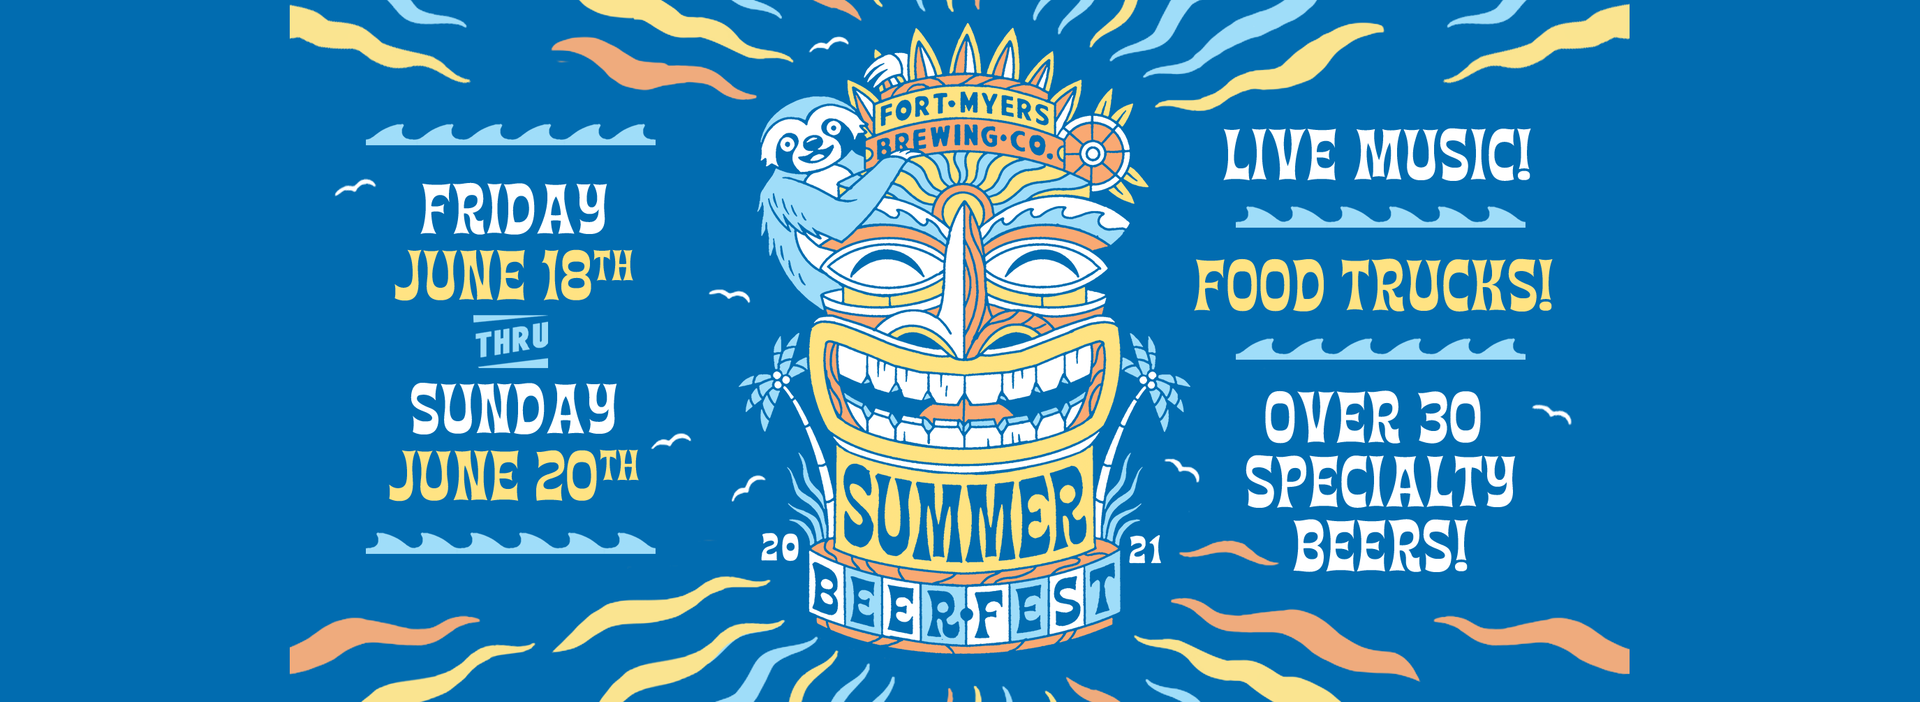 2021 Summer Beer Fest at Fort Myers Brewing